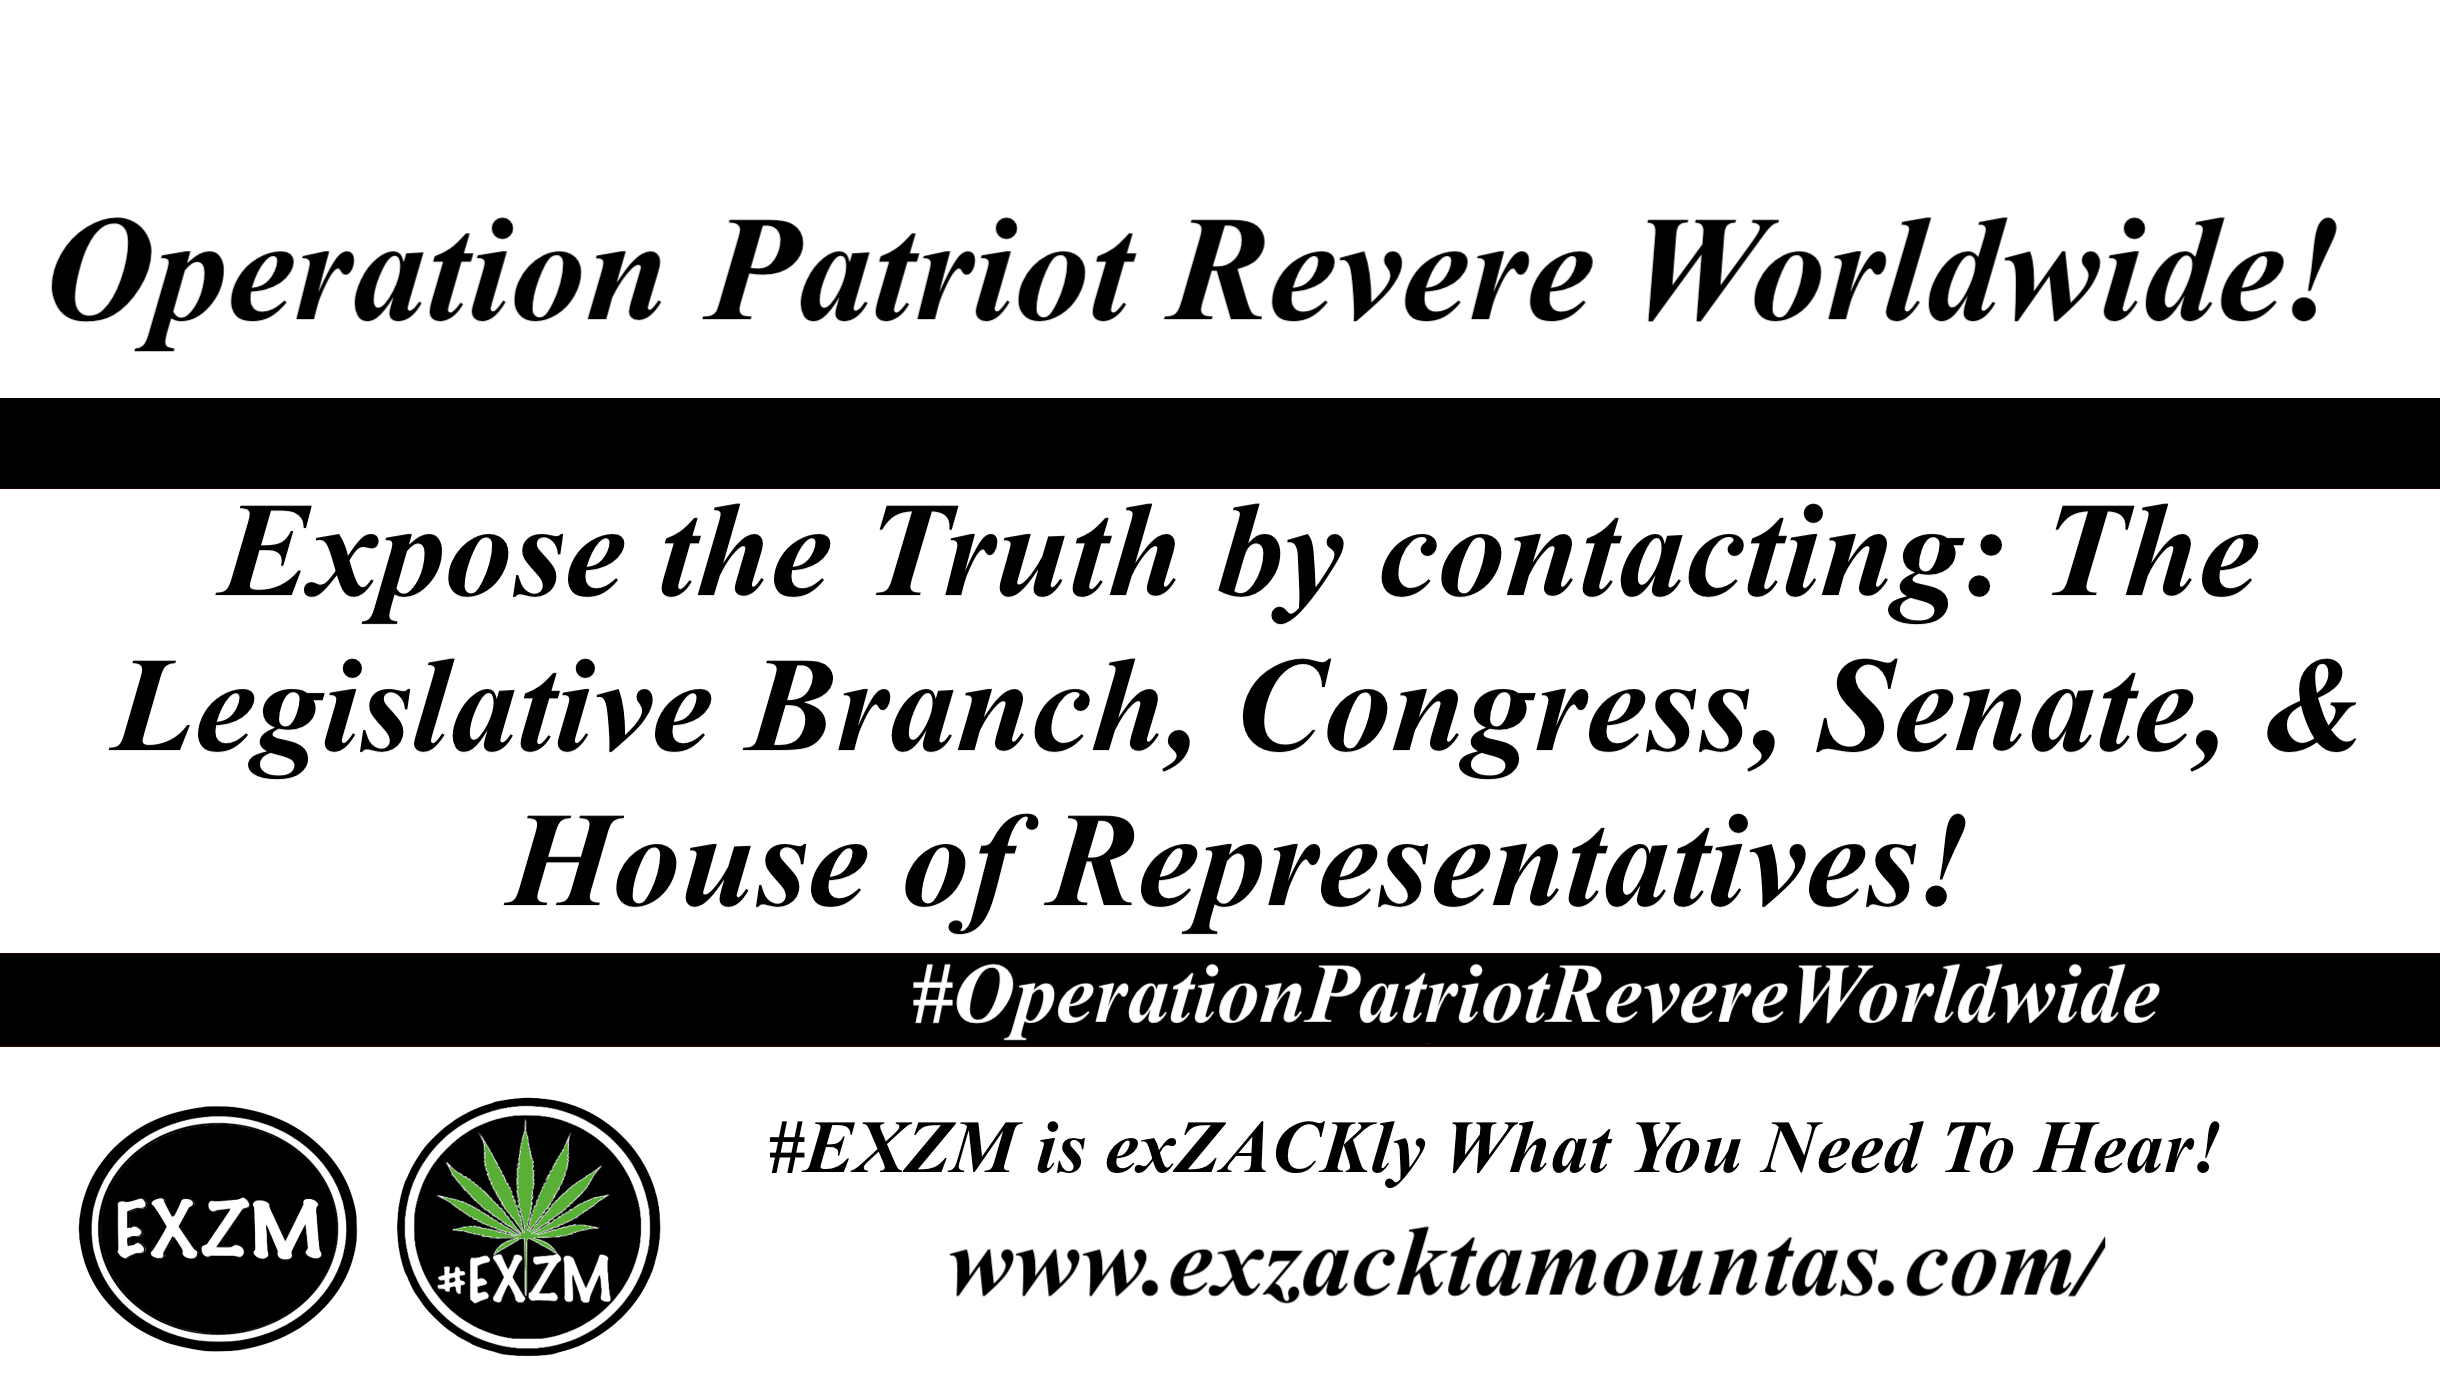 EXZM Operation Patriot Revere Worldwide 11 1 2019